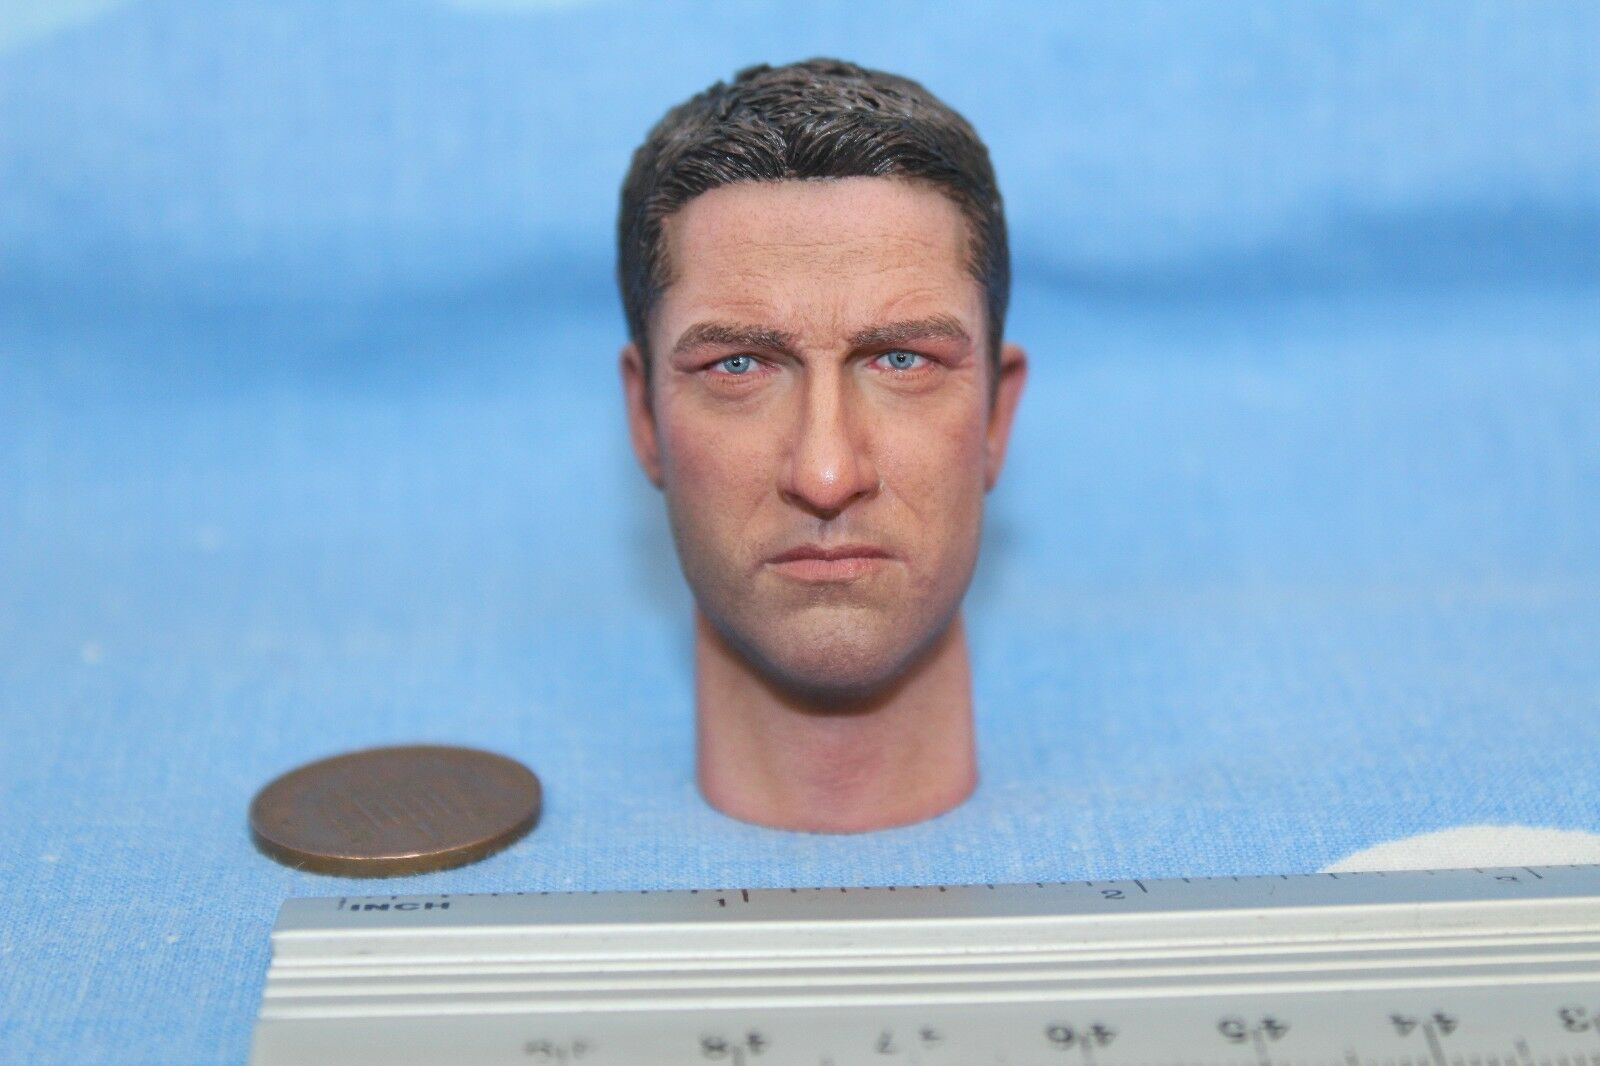 DID DRAGON IN DREAMS 1 6TH SCALE U.S SECRET SERVICE SPECIAL AGENT  HEAD  MARK